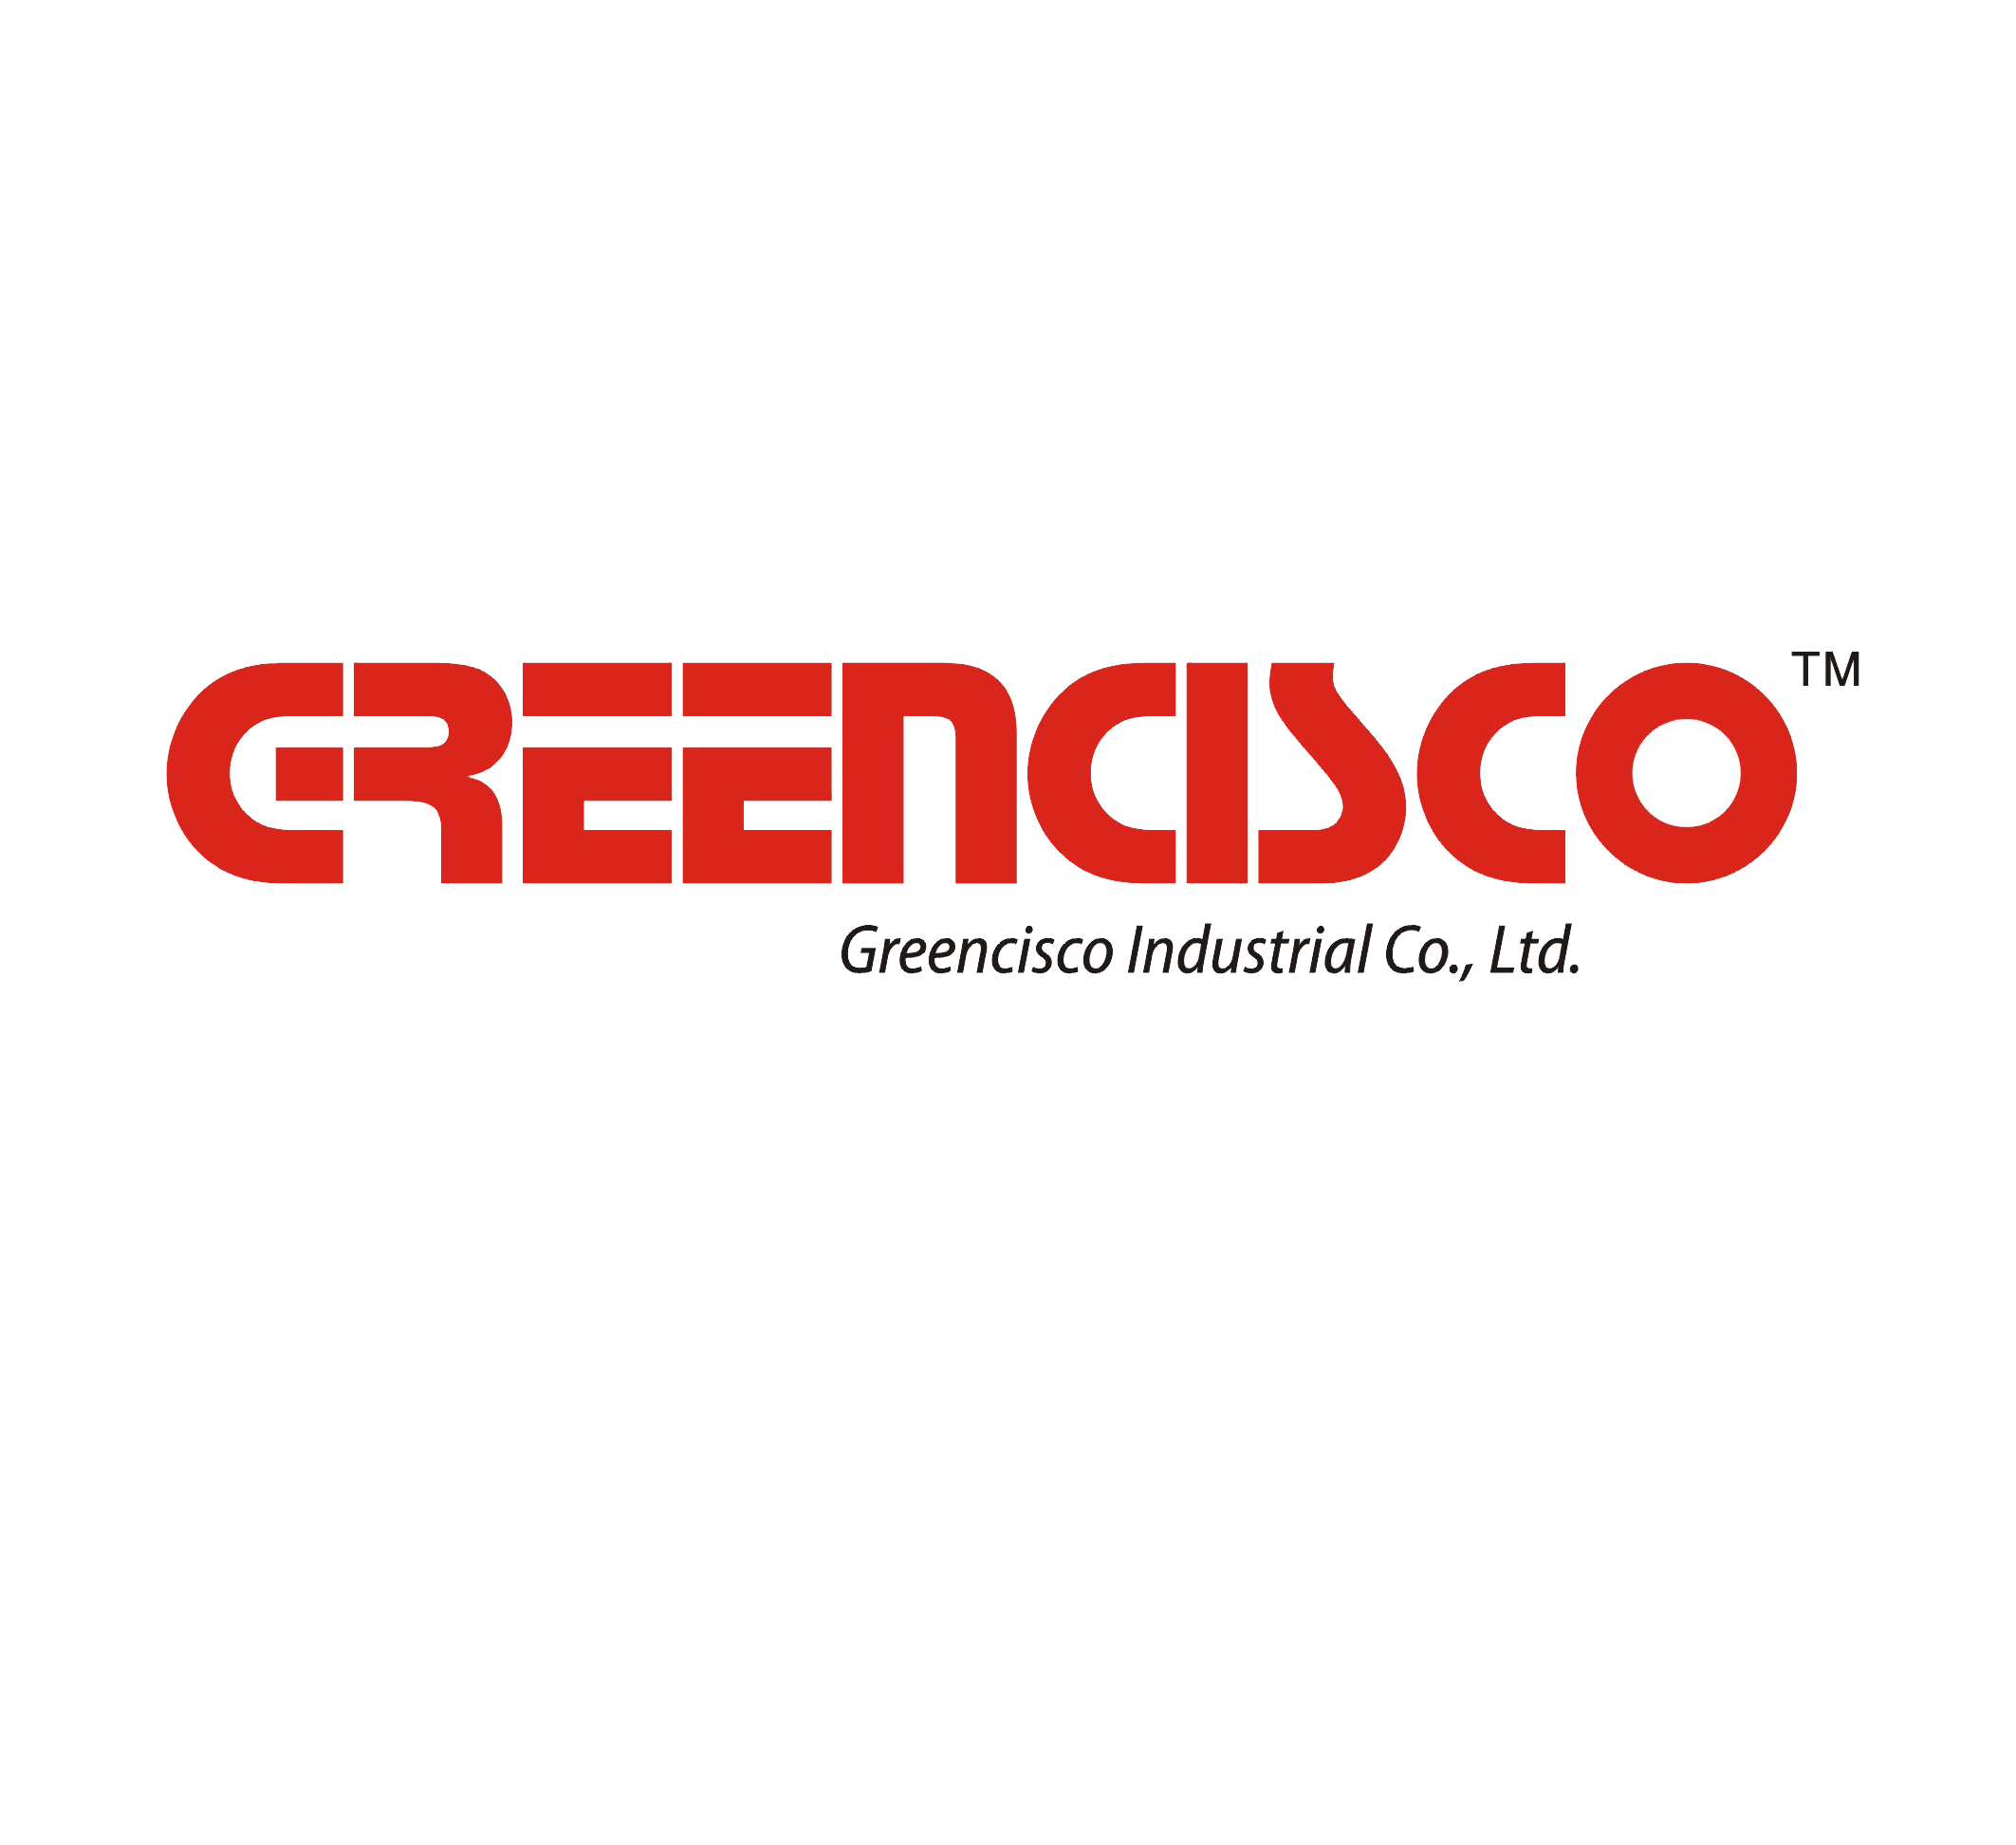 Greencisco Industrial Co., Ltd logo